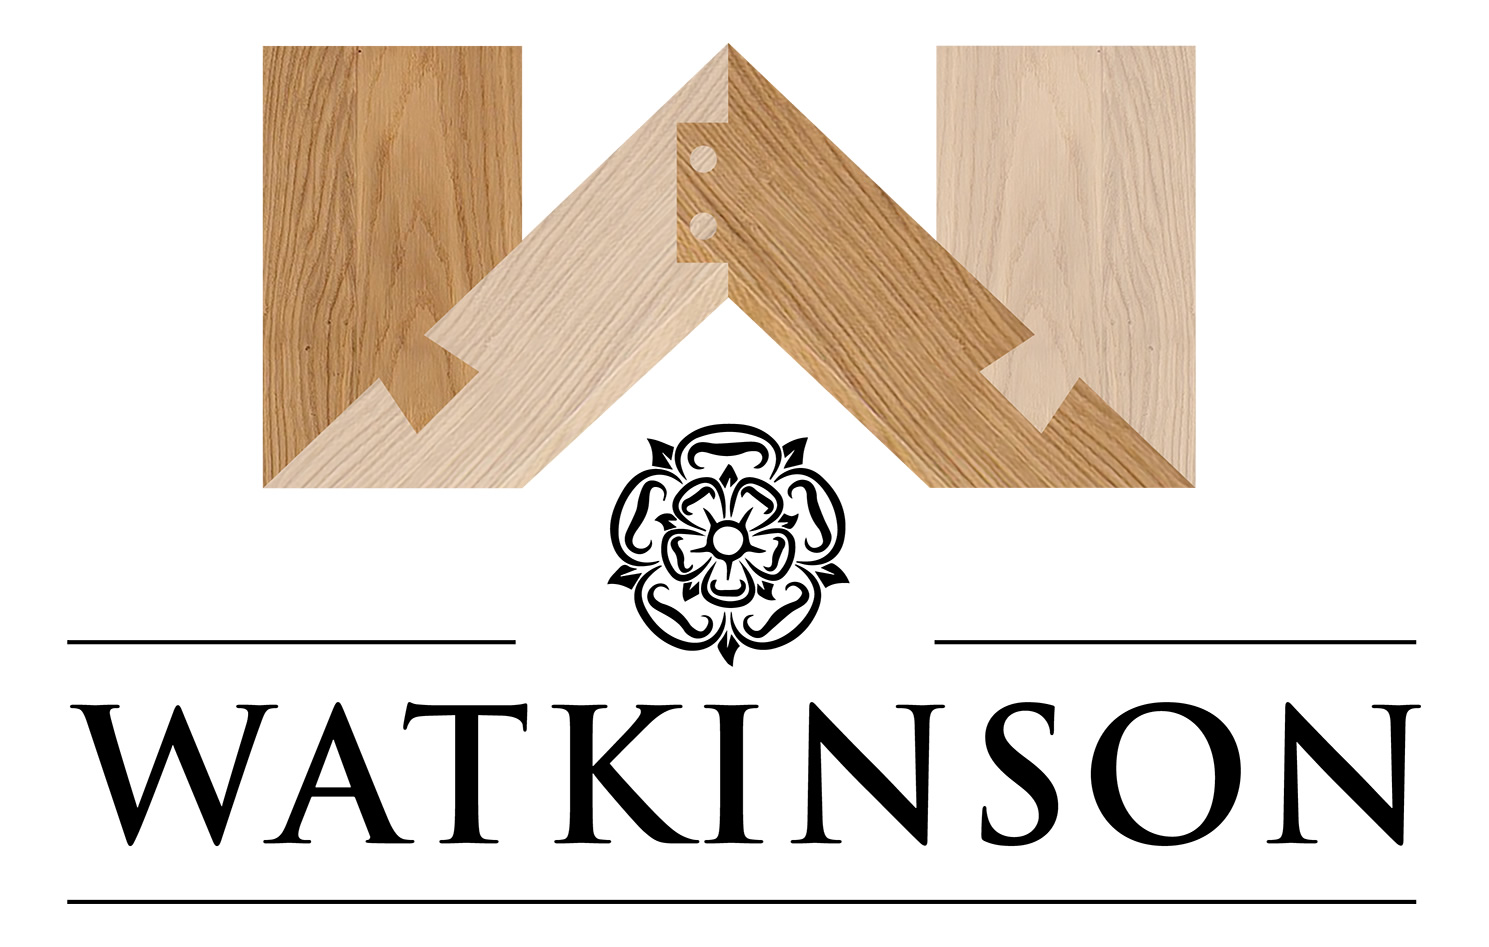 Watkinson Joinery Ltd